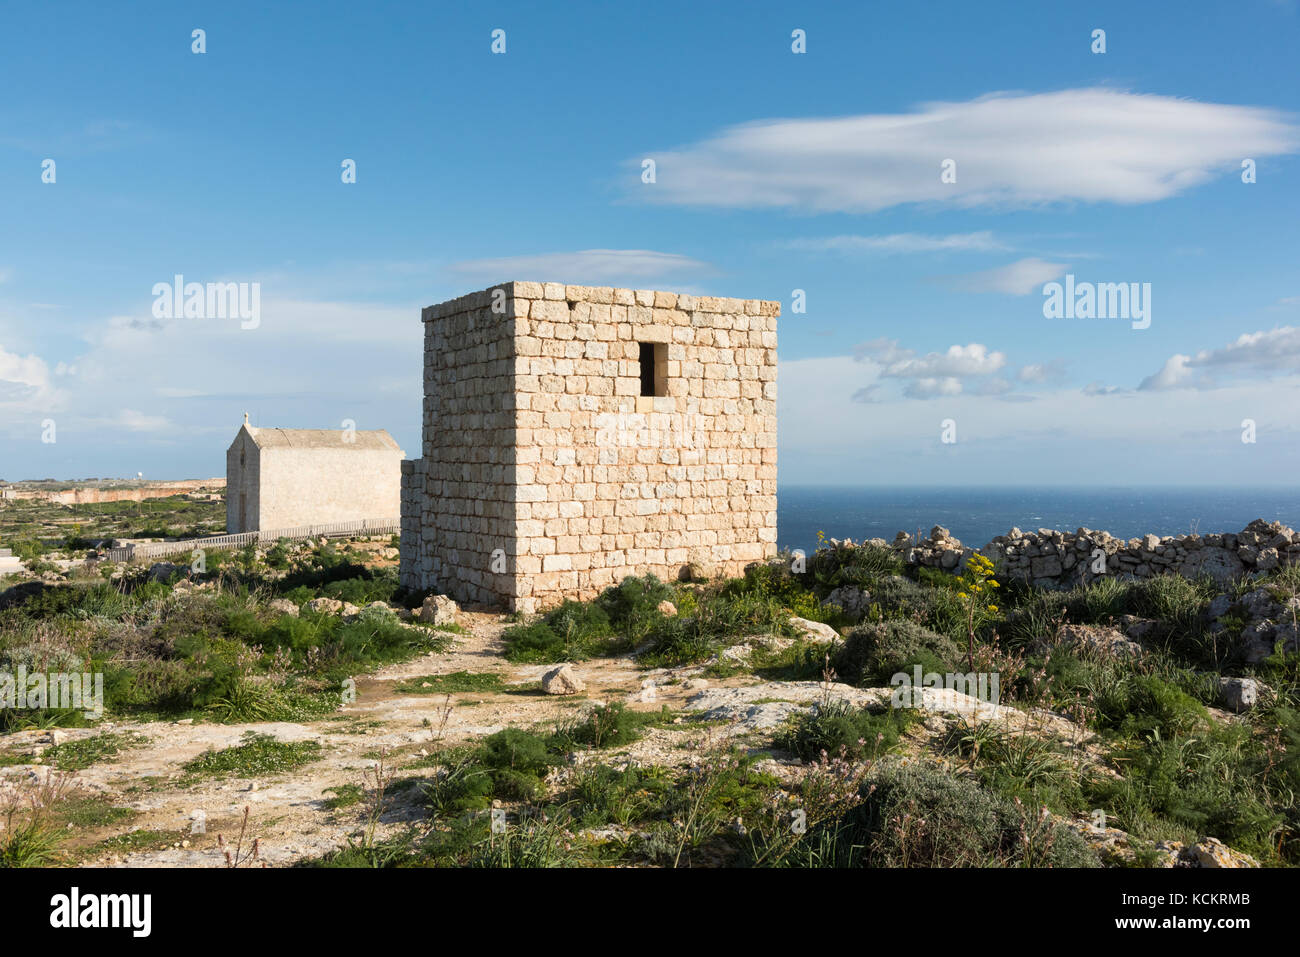 A stone watchtower and the Magdelene Chapel on the Dingli Cliffs Malta - Stock Image